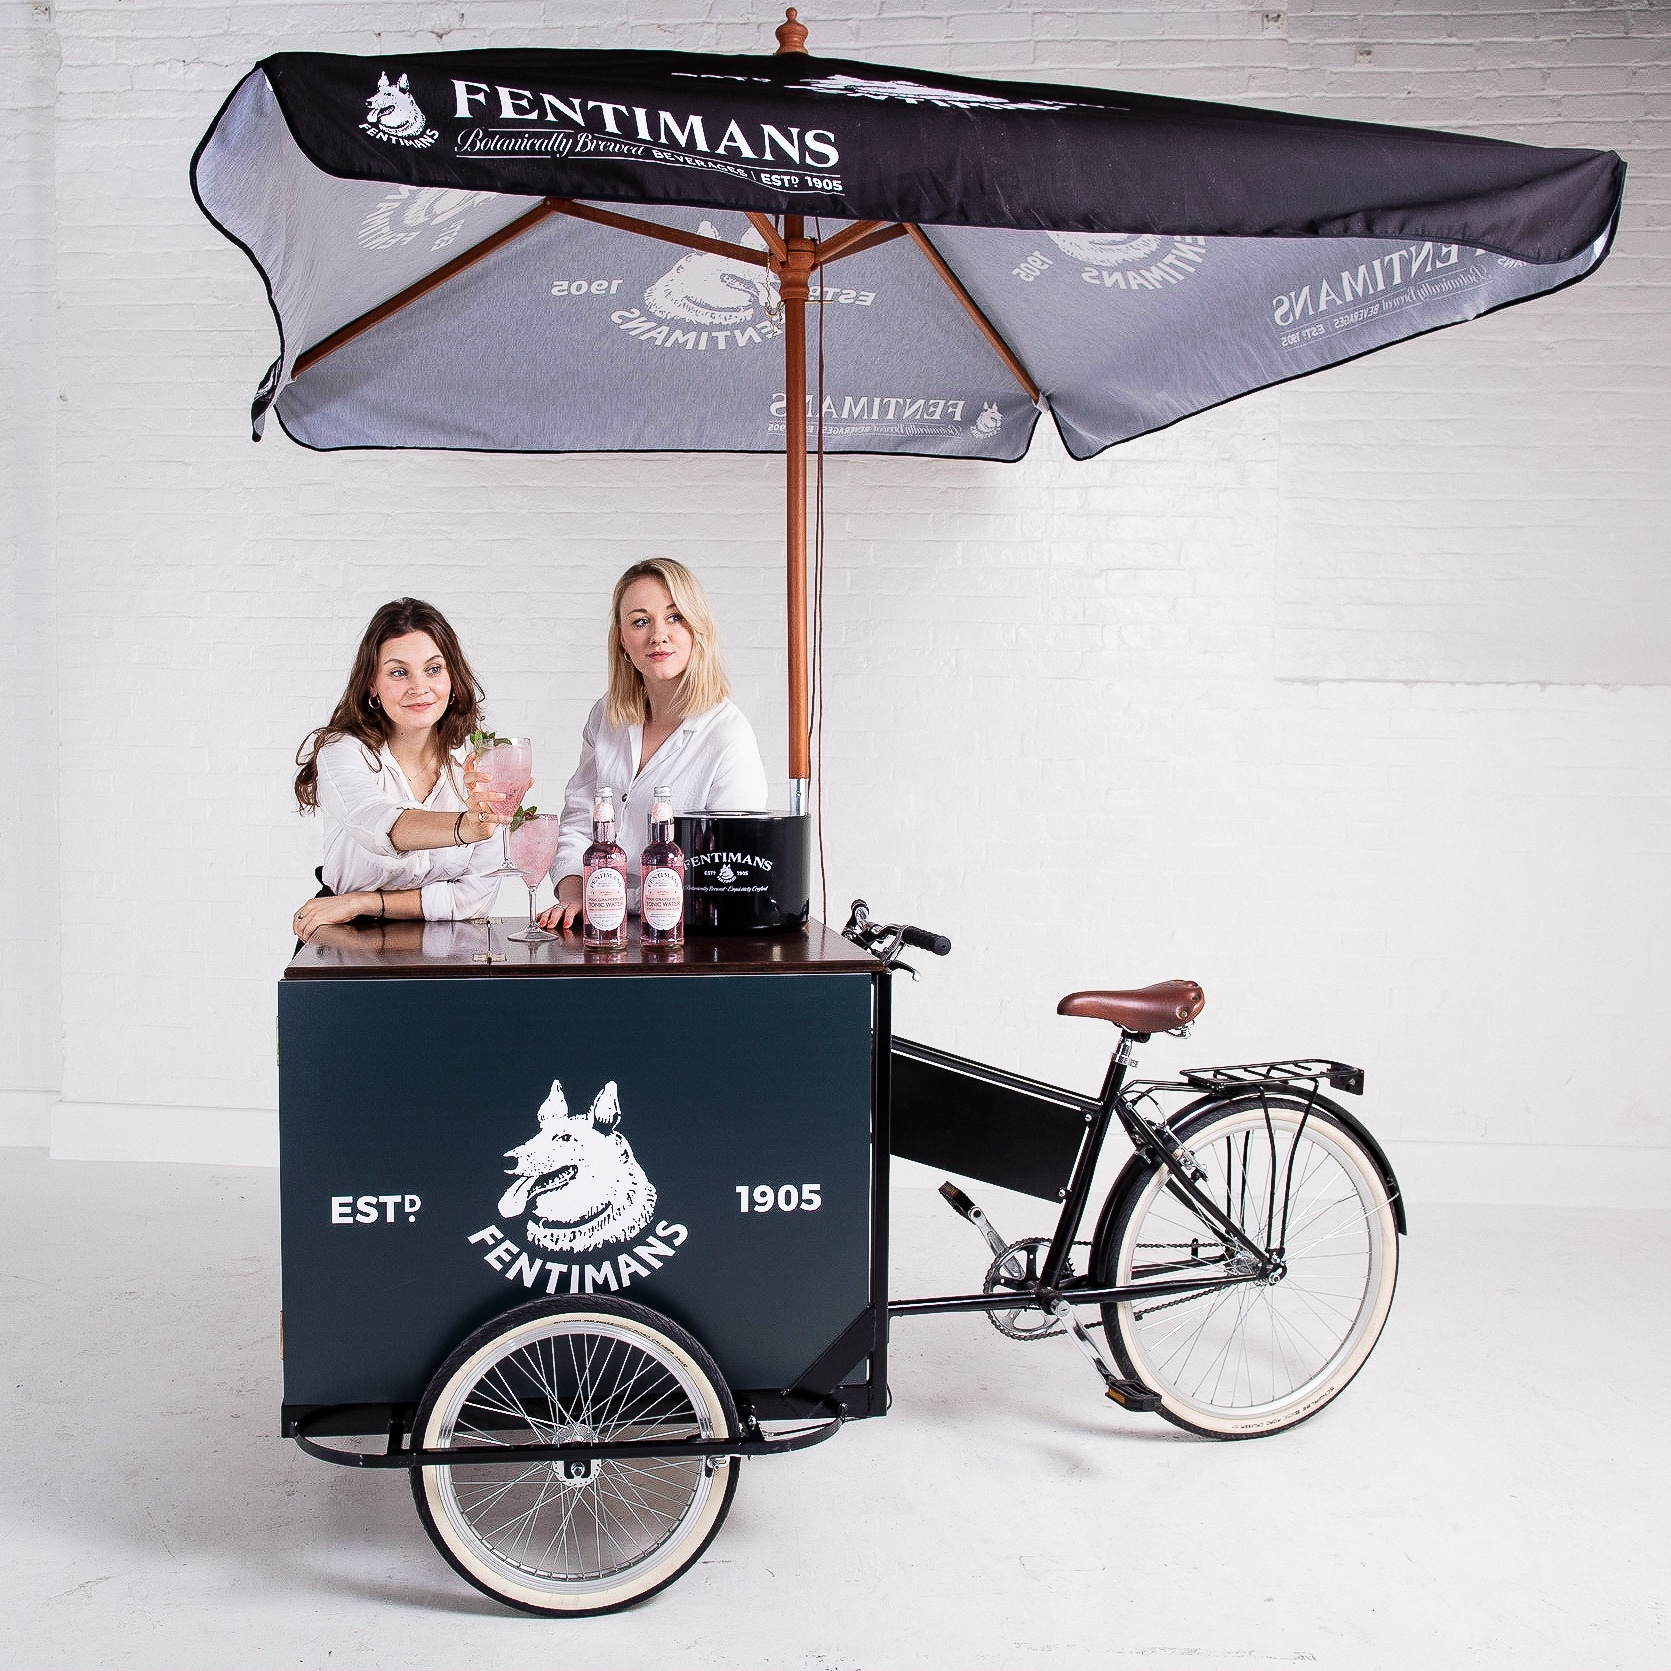 Tricycle+Bar+Fentimans+Staff+-+Fentimans+branded+with+Brand+Ambassadors